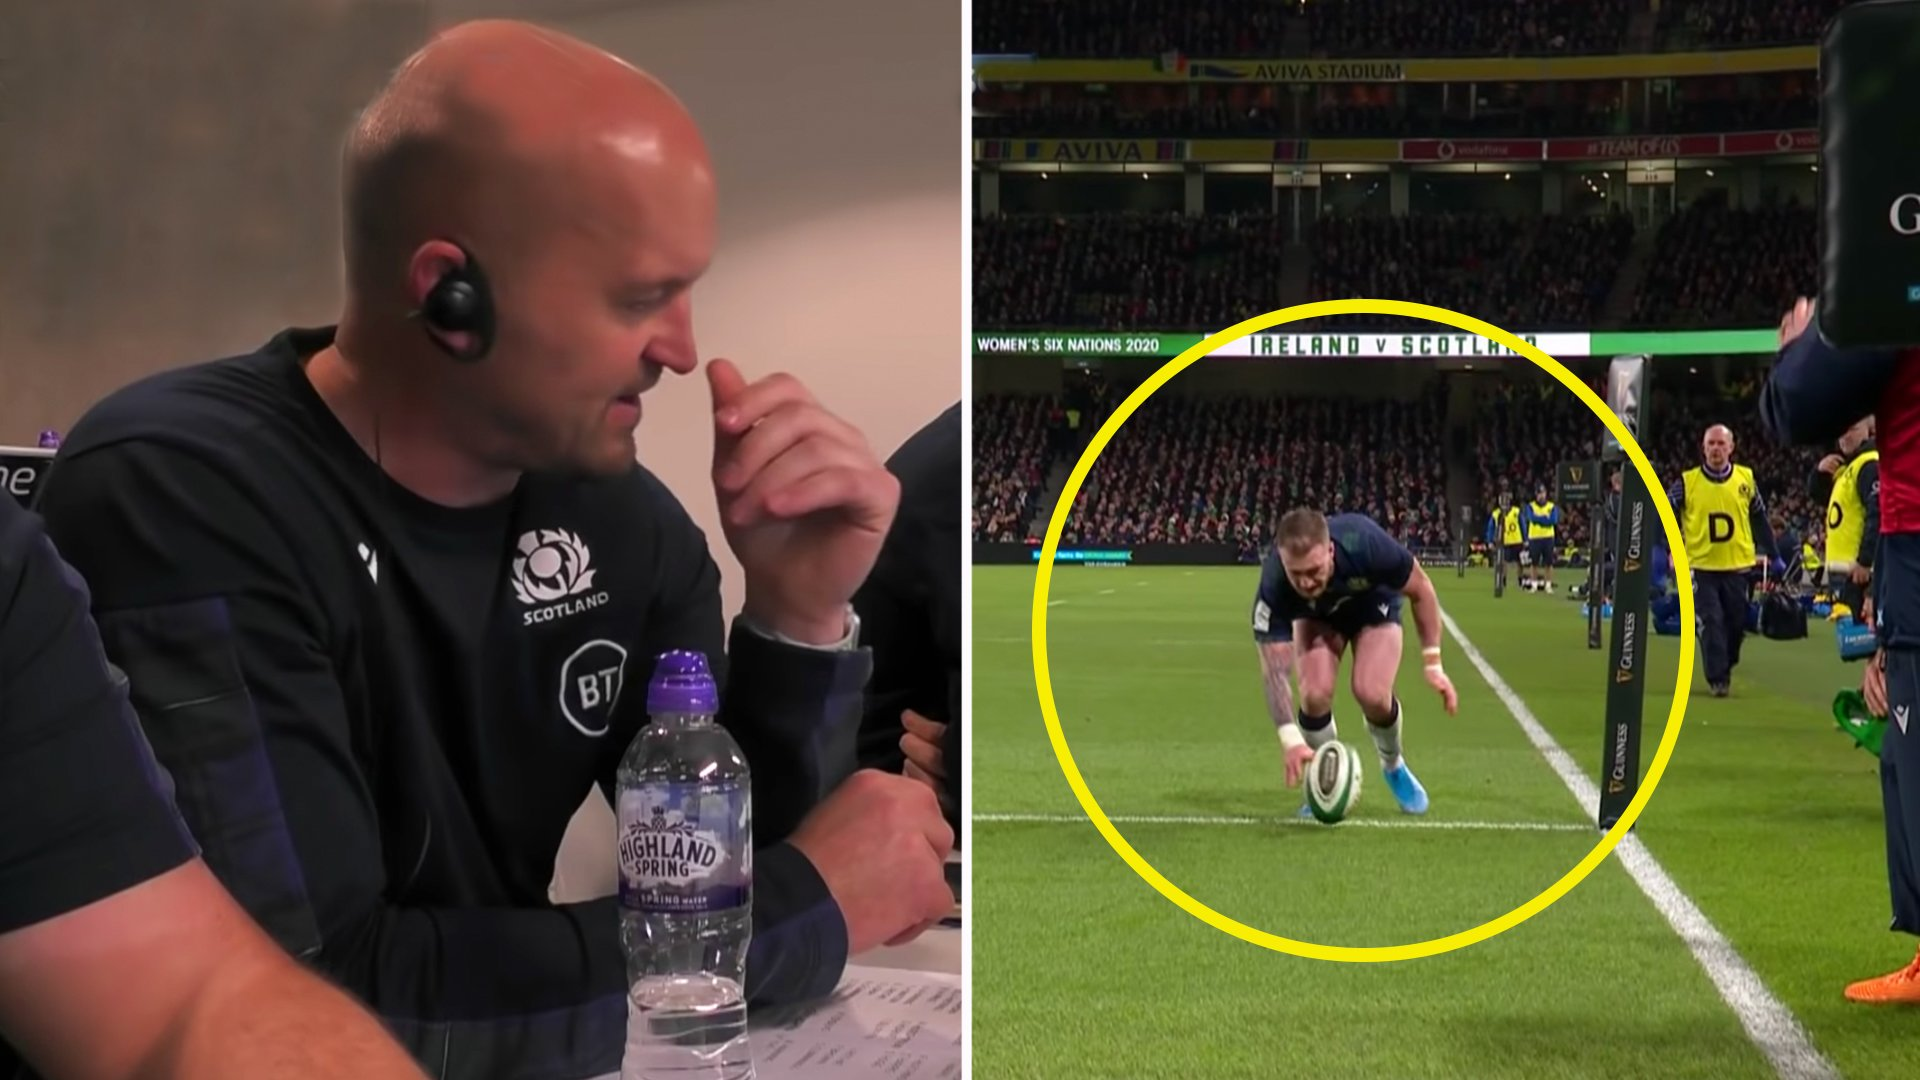 Coach mic picks up derogatory Gregor Townsend comments after Hogg error in unheard new audio